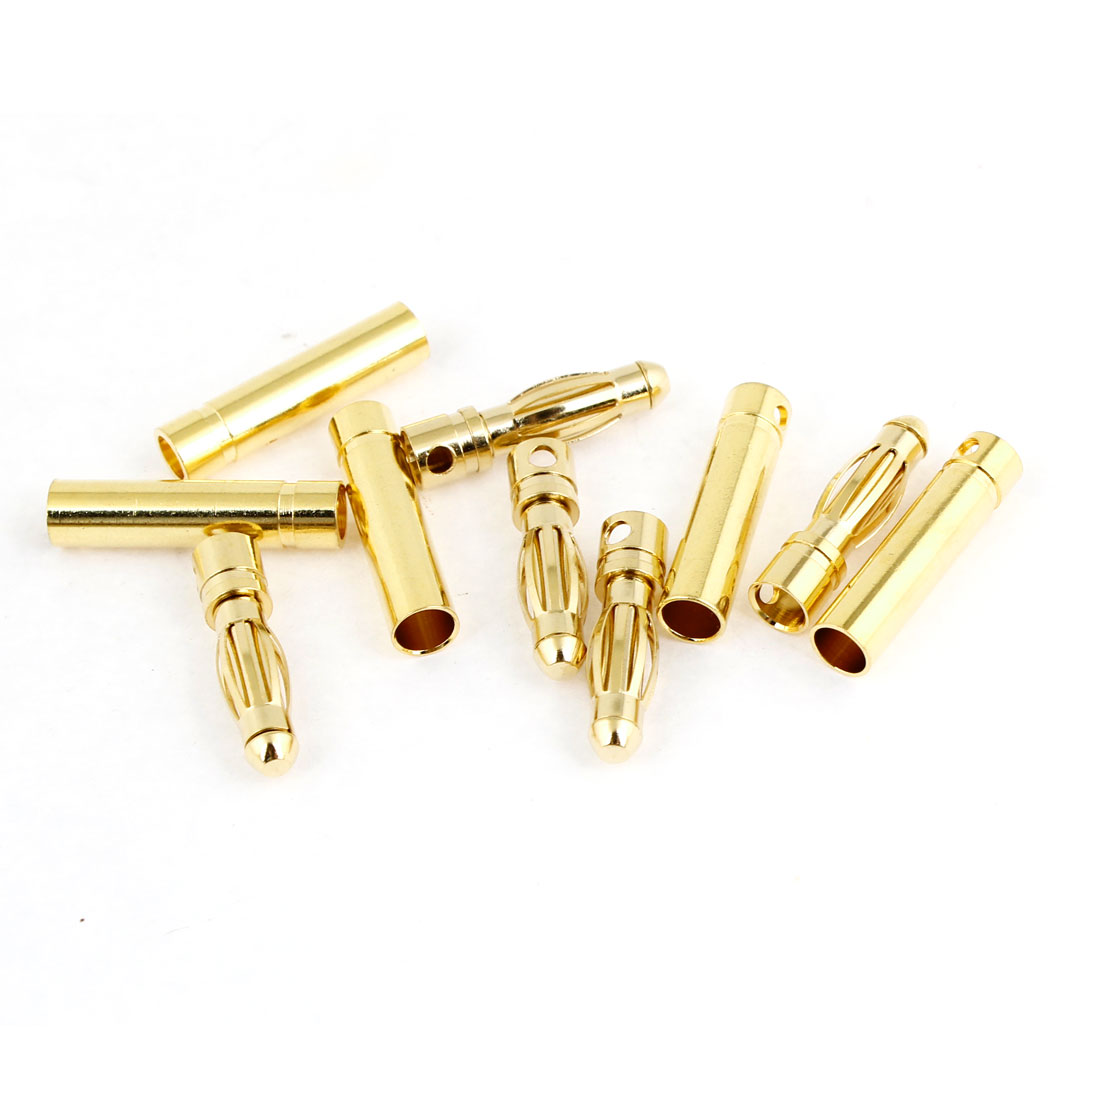 5 Pairs RC Model Li-Po Battery Male Female Banana Connector 4mm